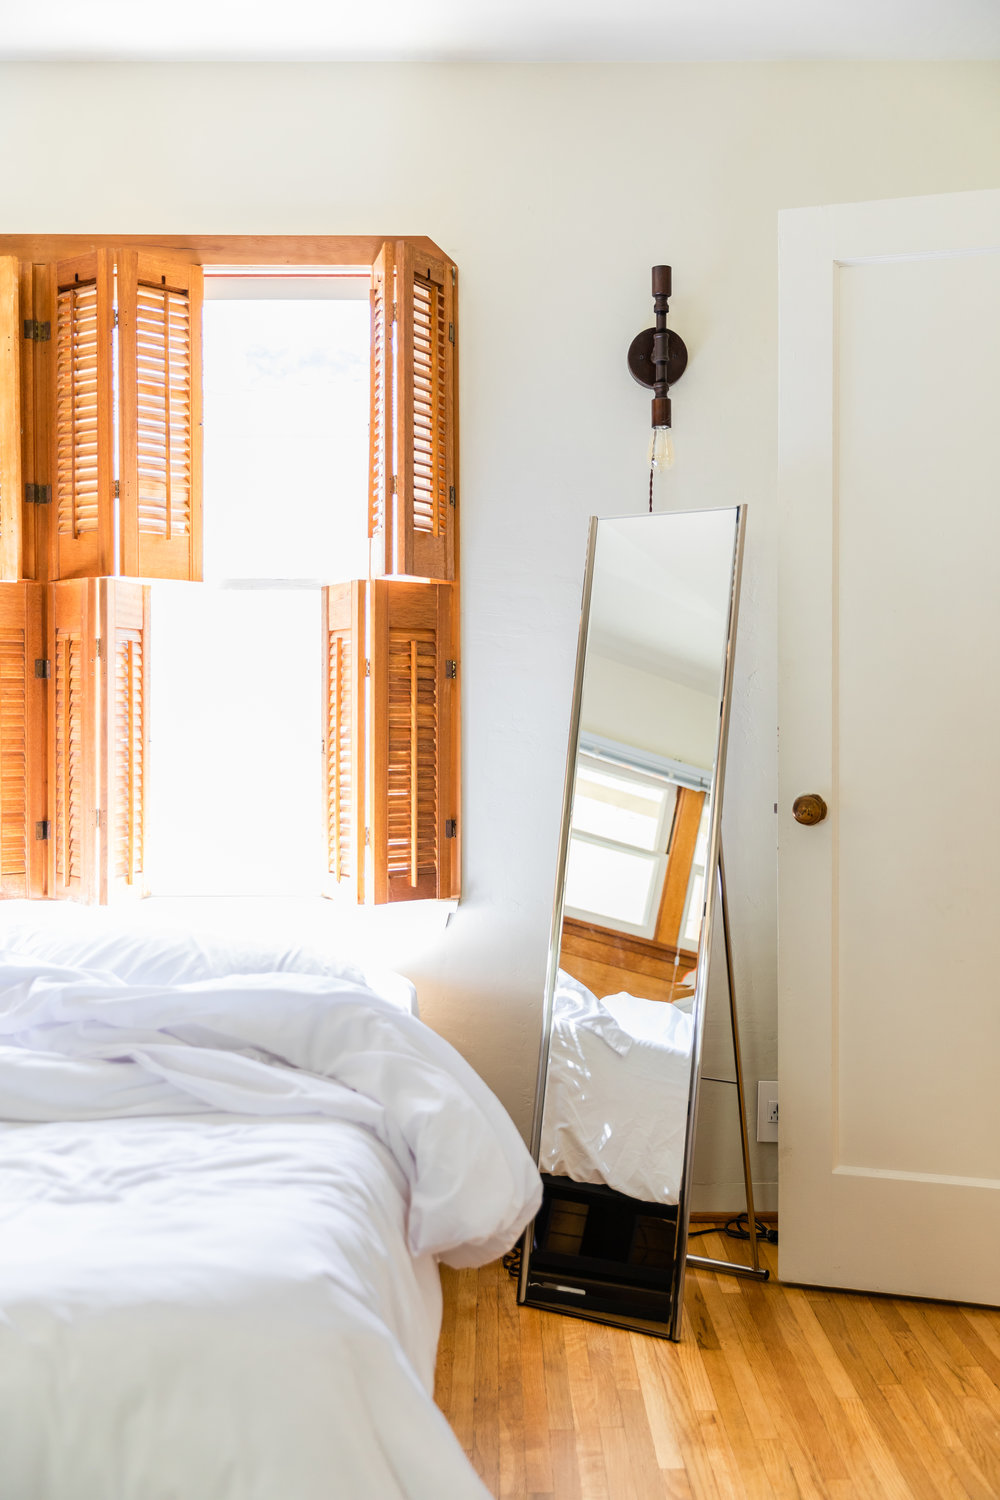 Los Angeles Airbnb with white walls and white bedding and sunlight streaming in through wooden shutters.